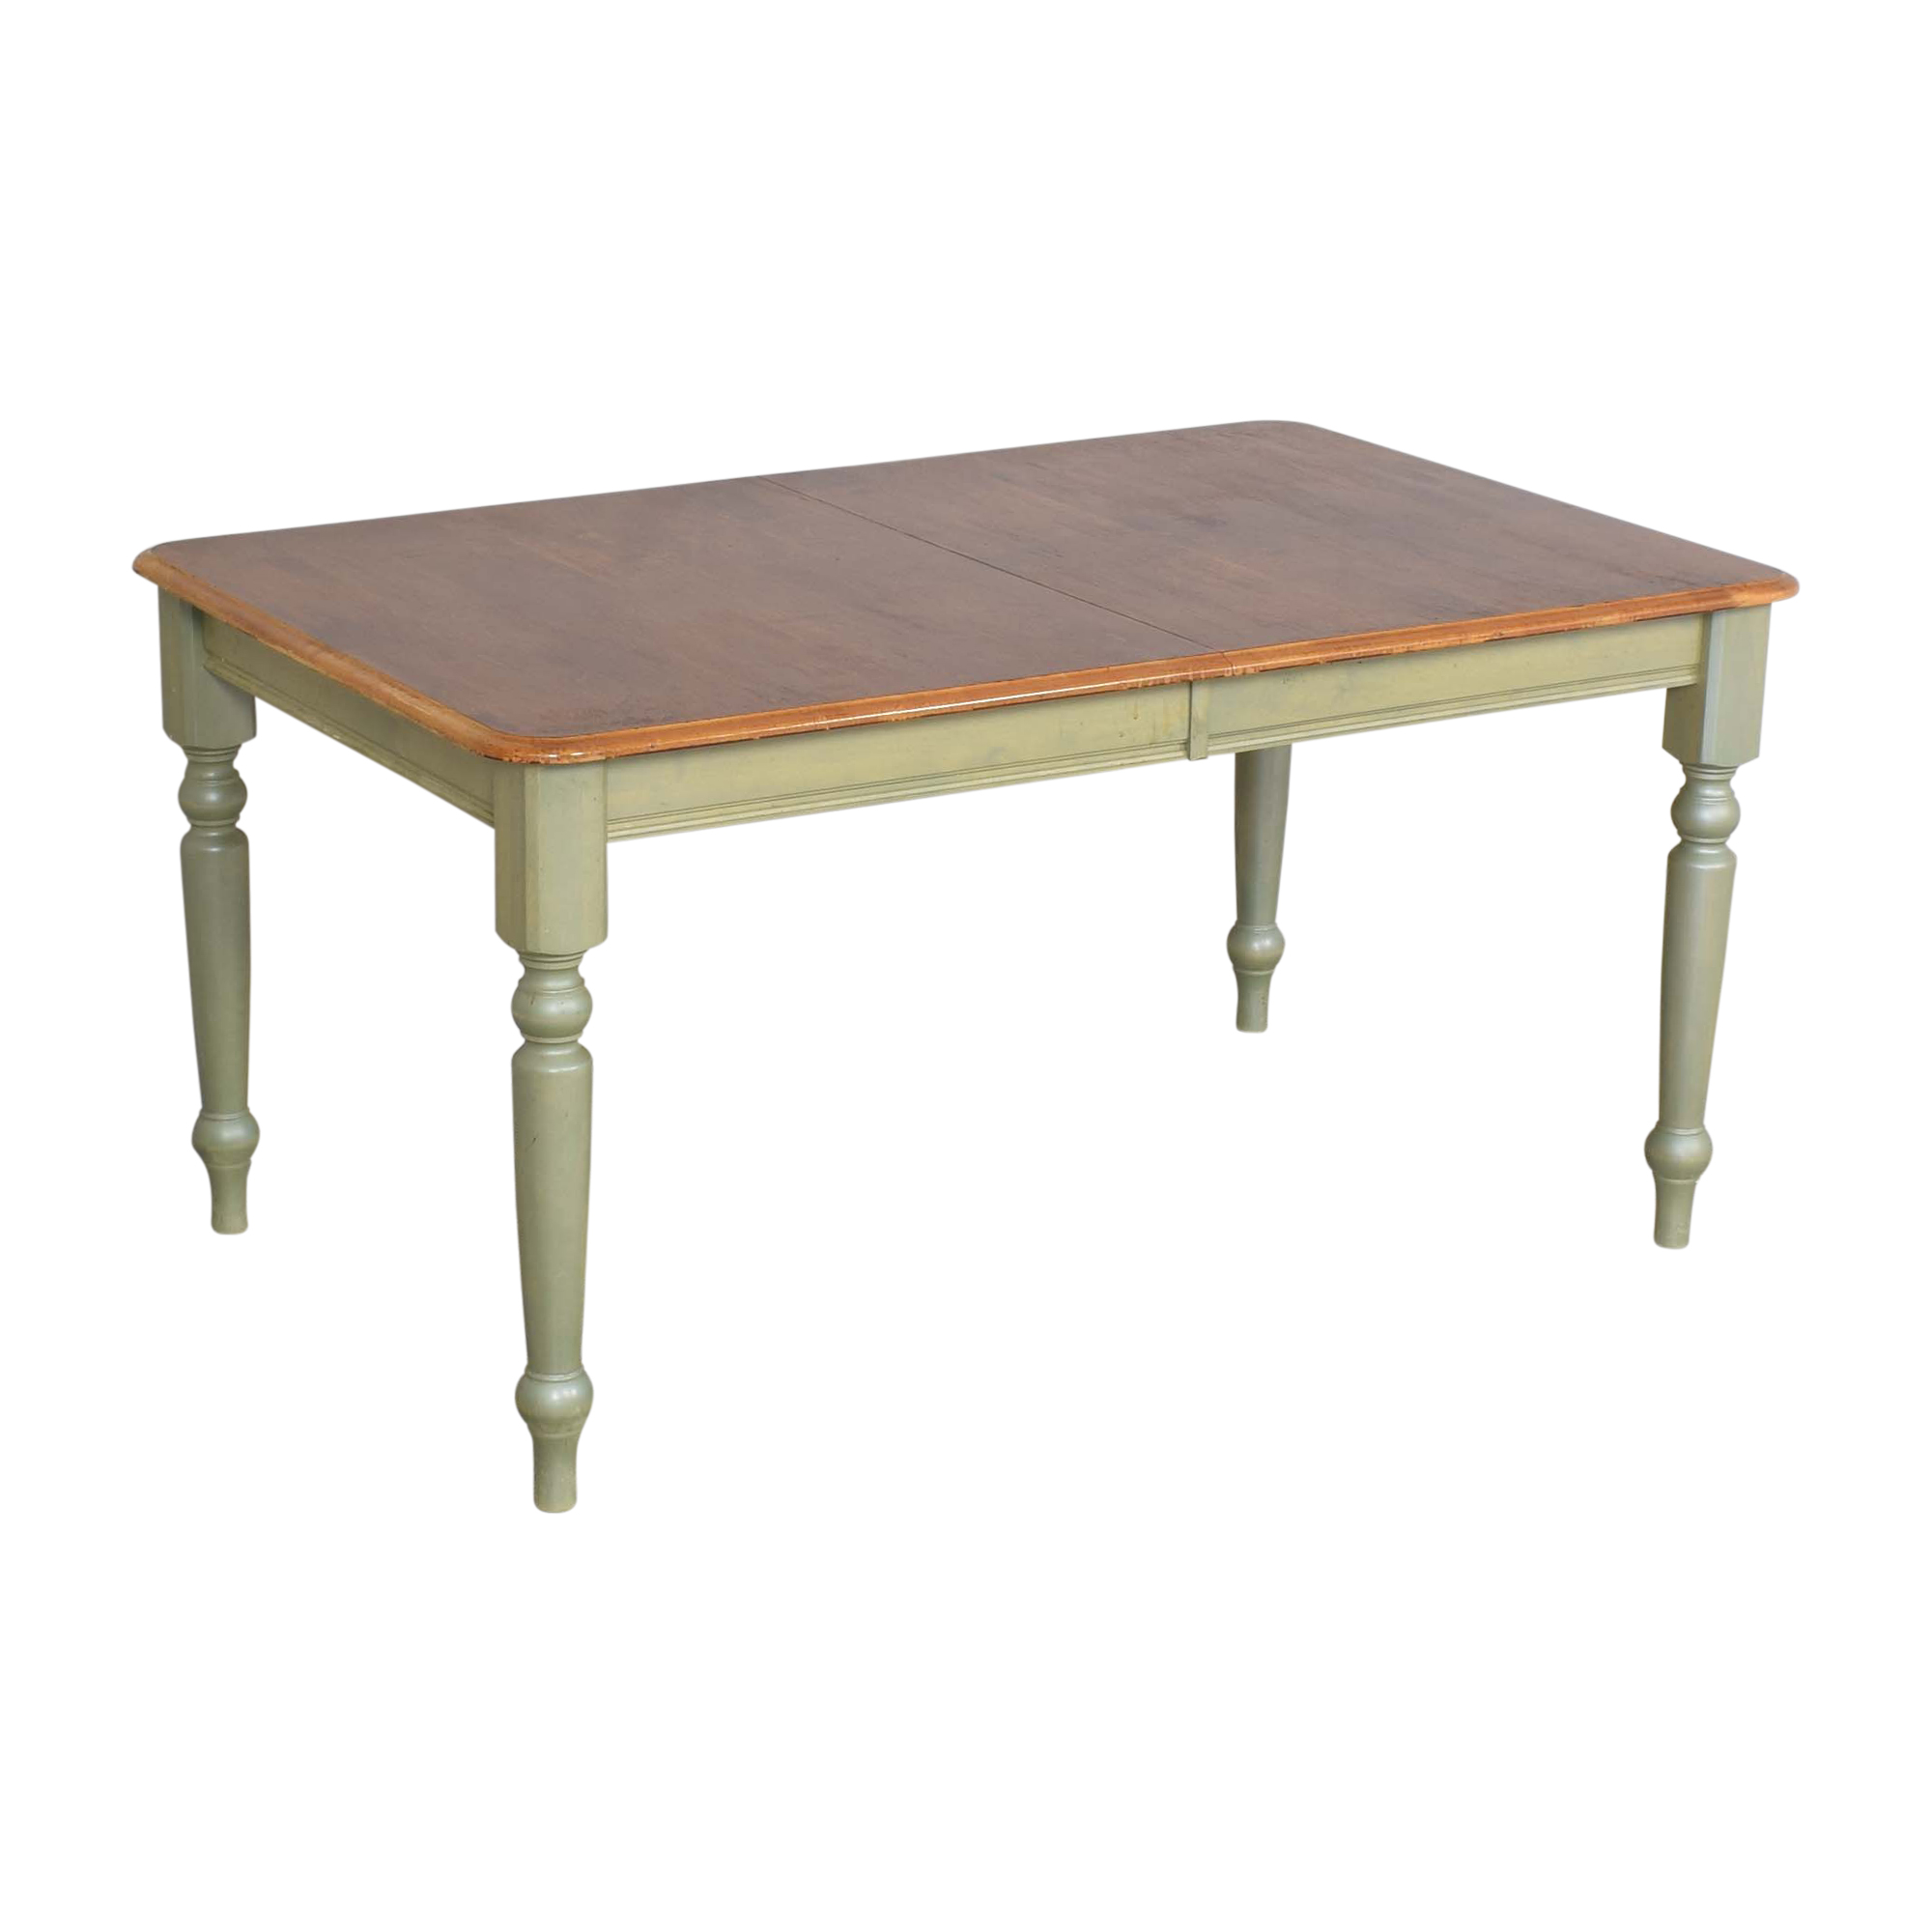 Canadel Canadel Farmhouse Dining Table discount